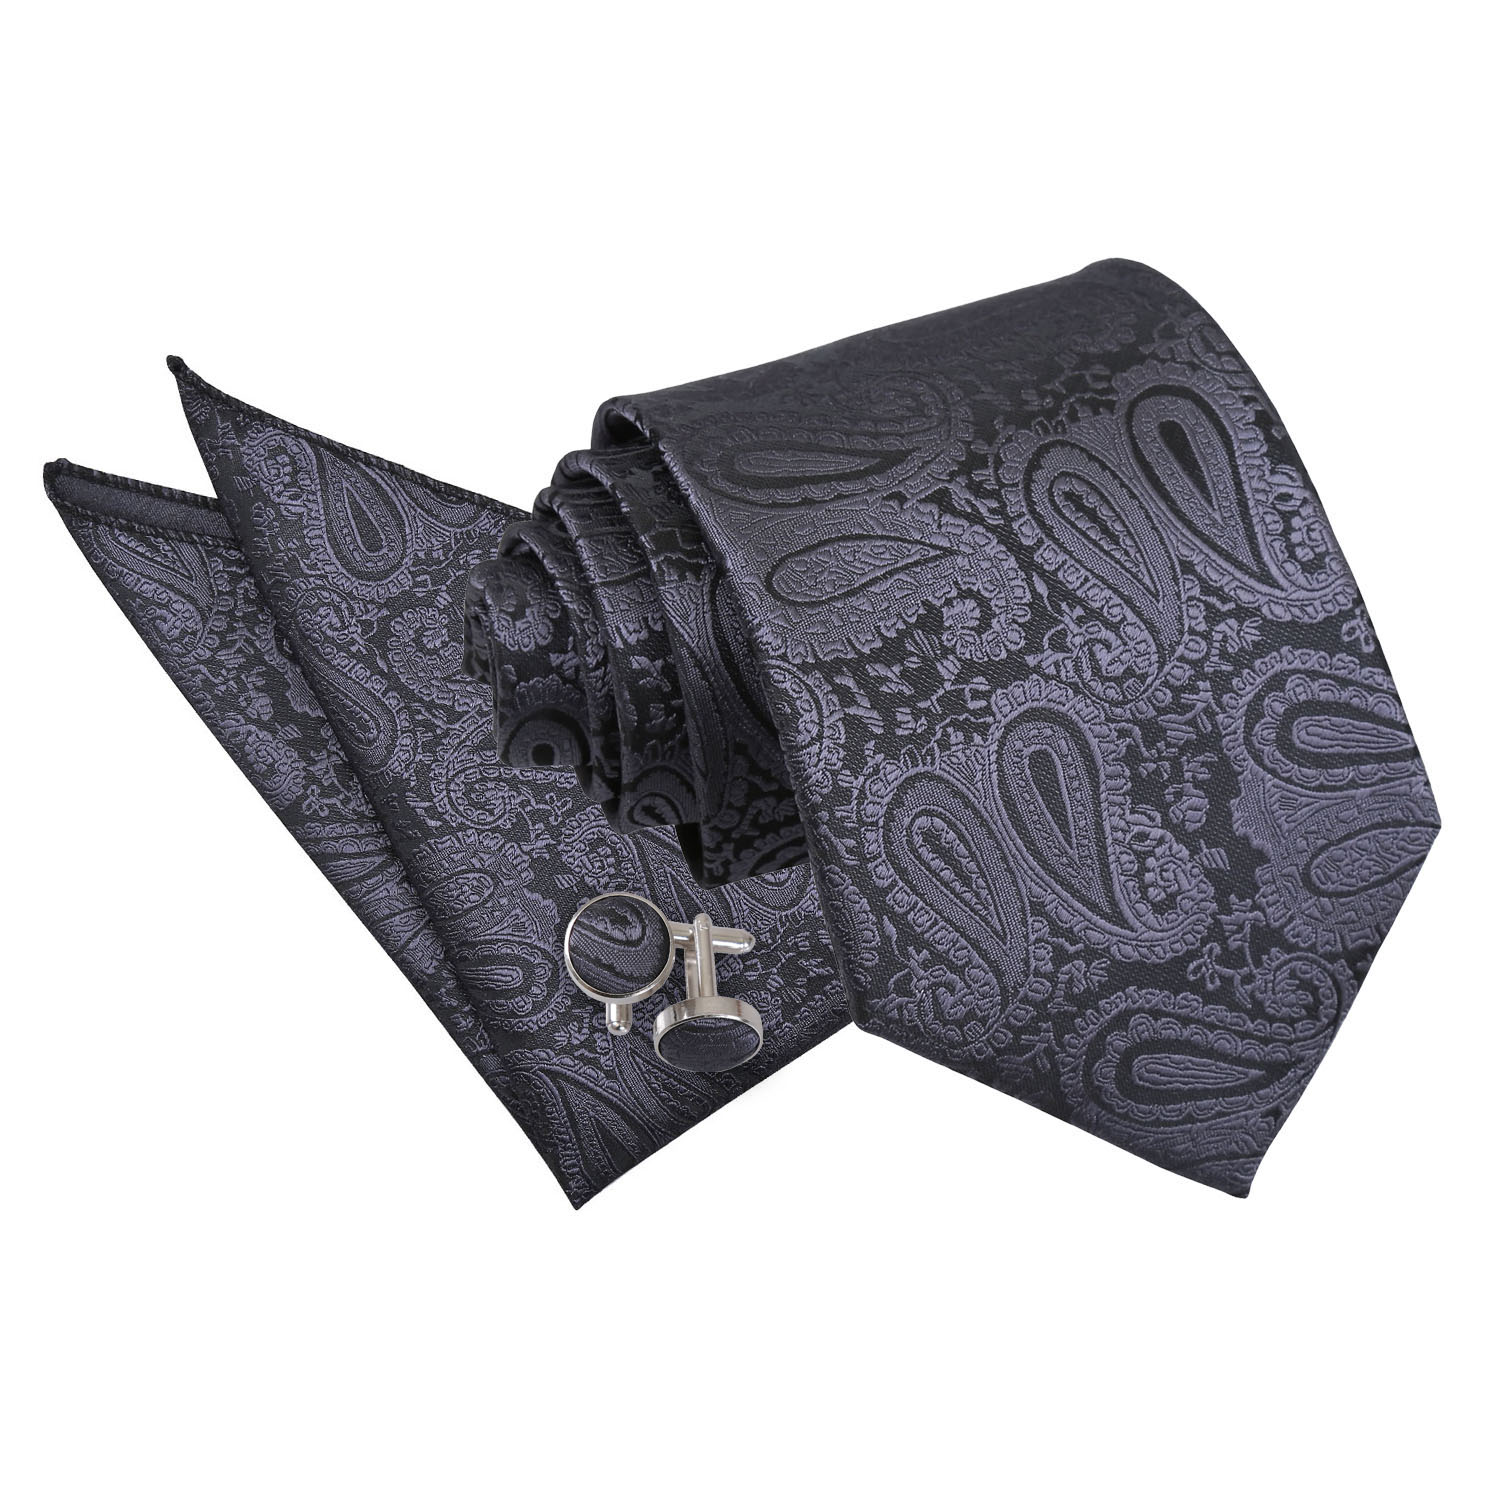 f1c0e6796590 Details about DQT Woven Floral Paisley Charcoal Grey Classic Skinny Tie  Hanky Cufflinks Set